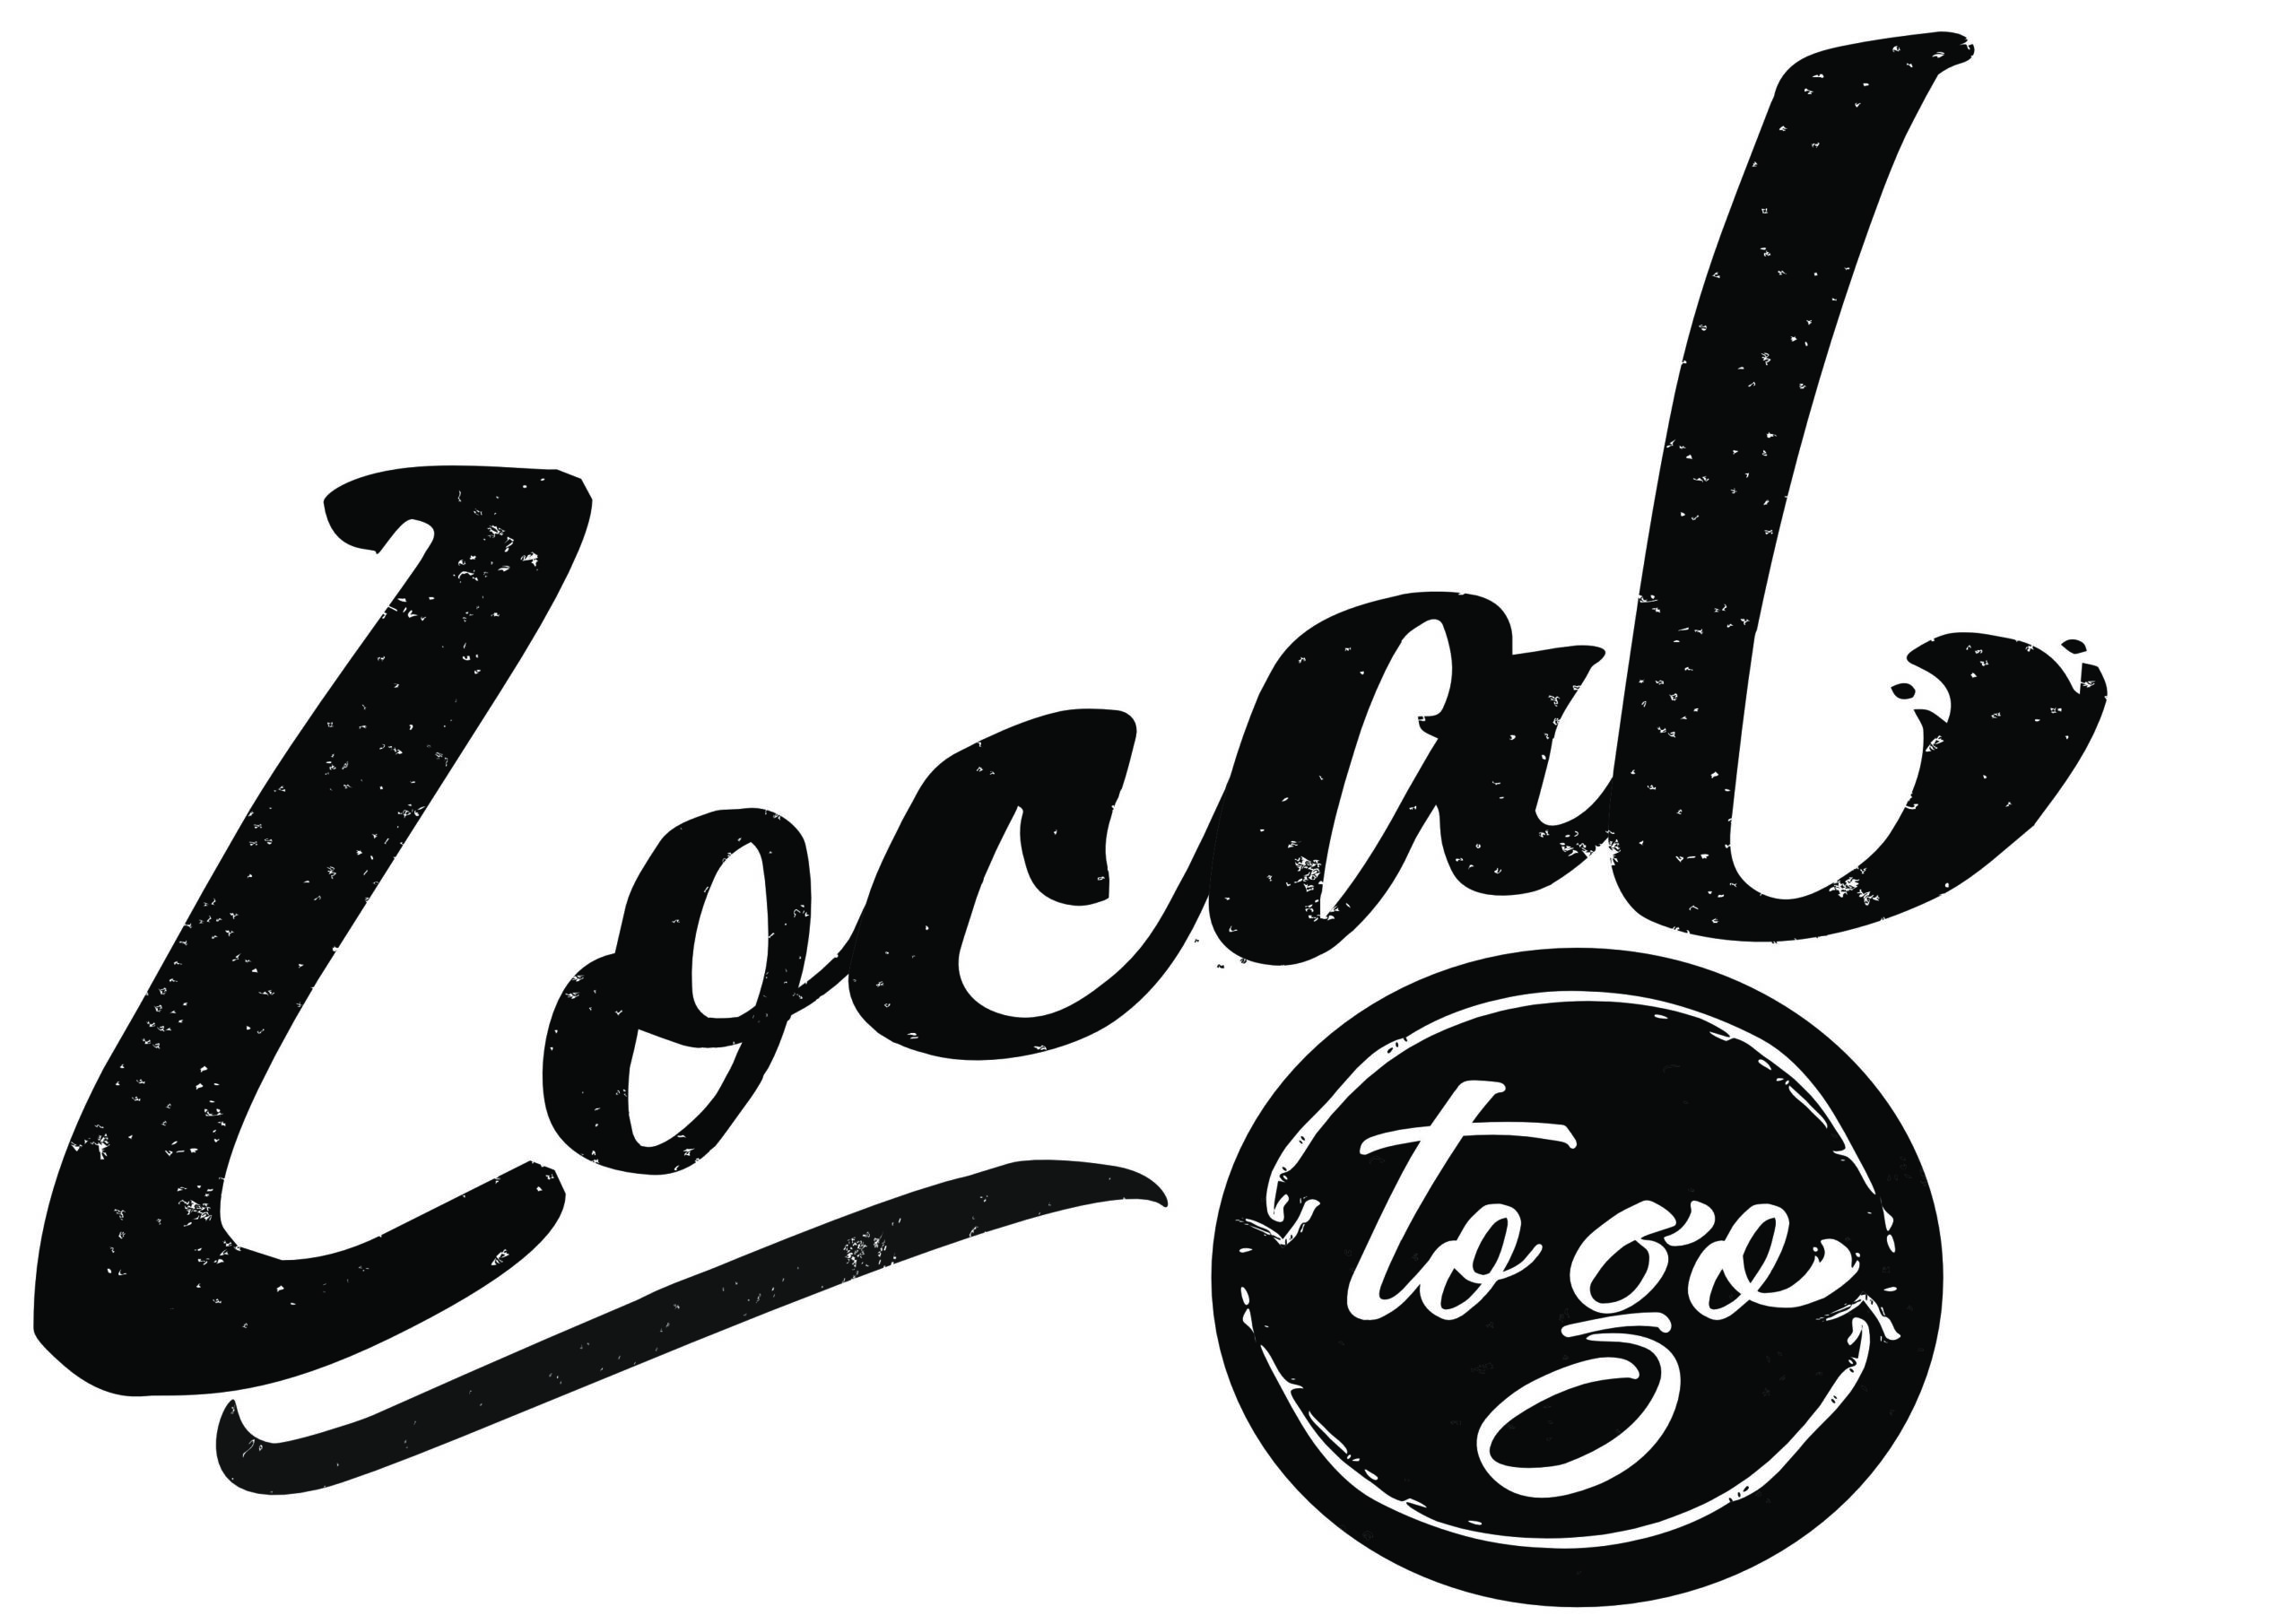 Local to go